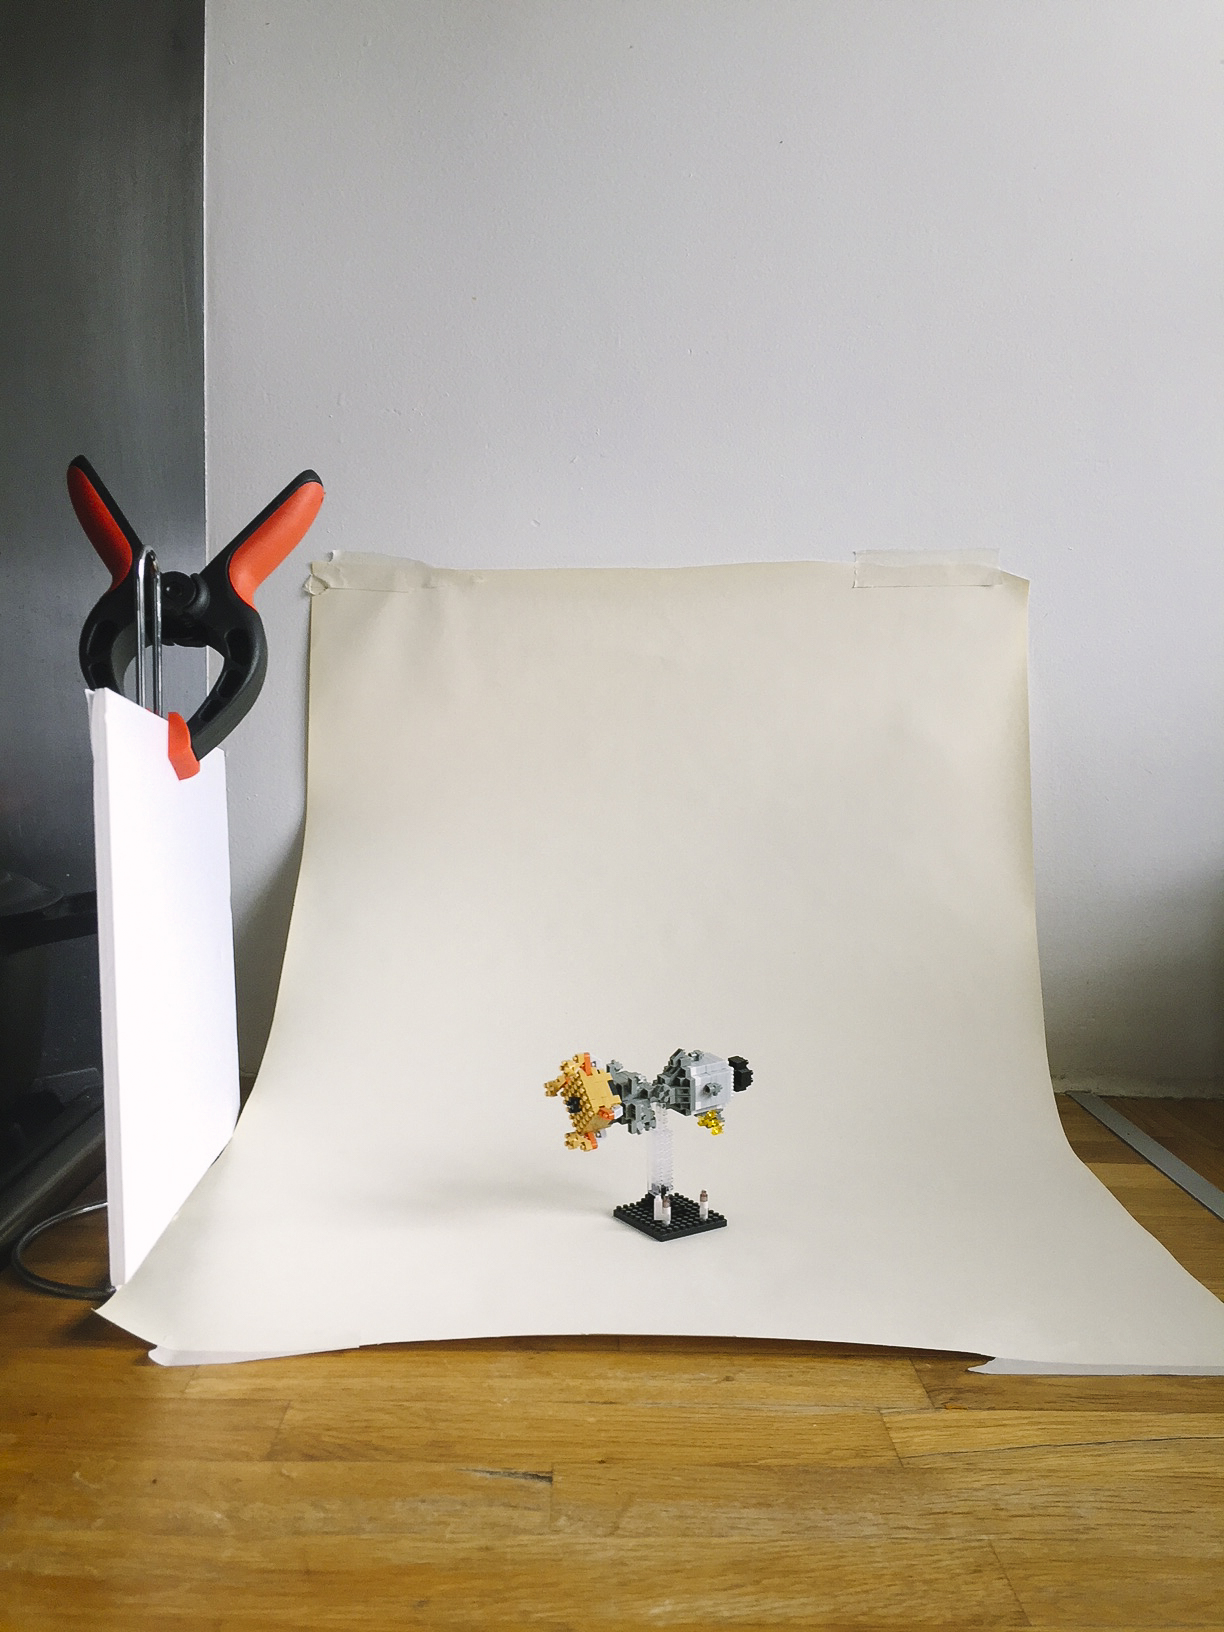 This simple setup was created with masking tape, butcher's paper and a piece of white card to fill in some shadows. Notice how the paper is taped slightly away from the wall to create a nice curve; this gives you a seamless backdrop. The white card is placed opposite the window to soften the shadow.